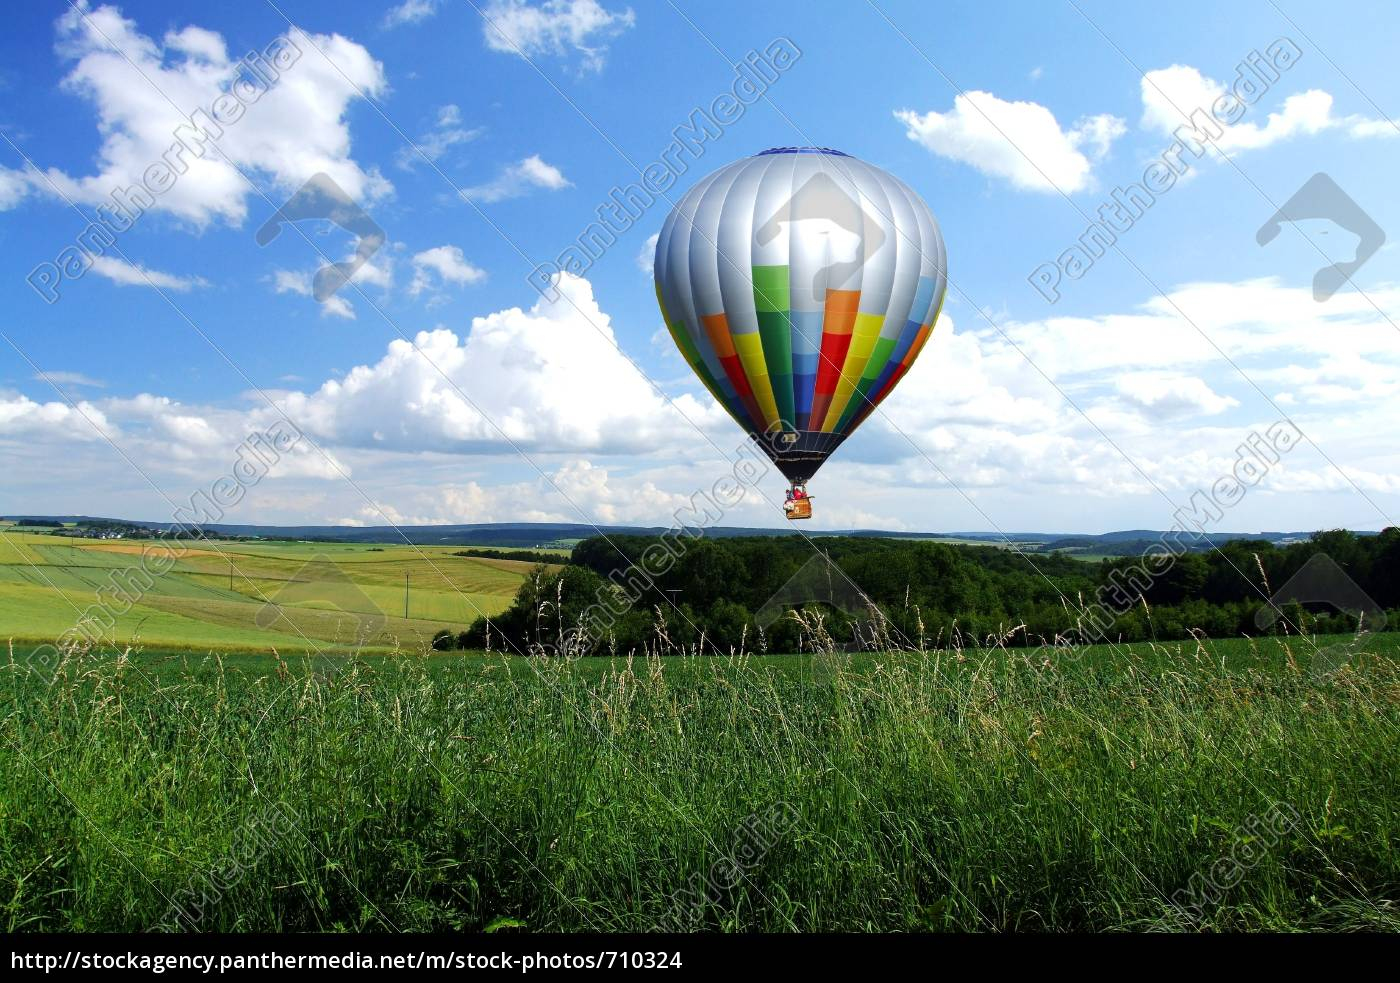 balloon, over, fields - 710324